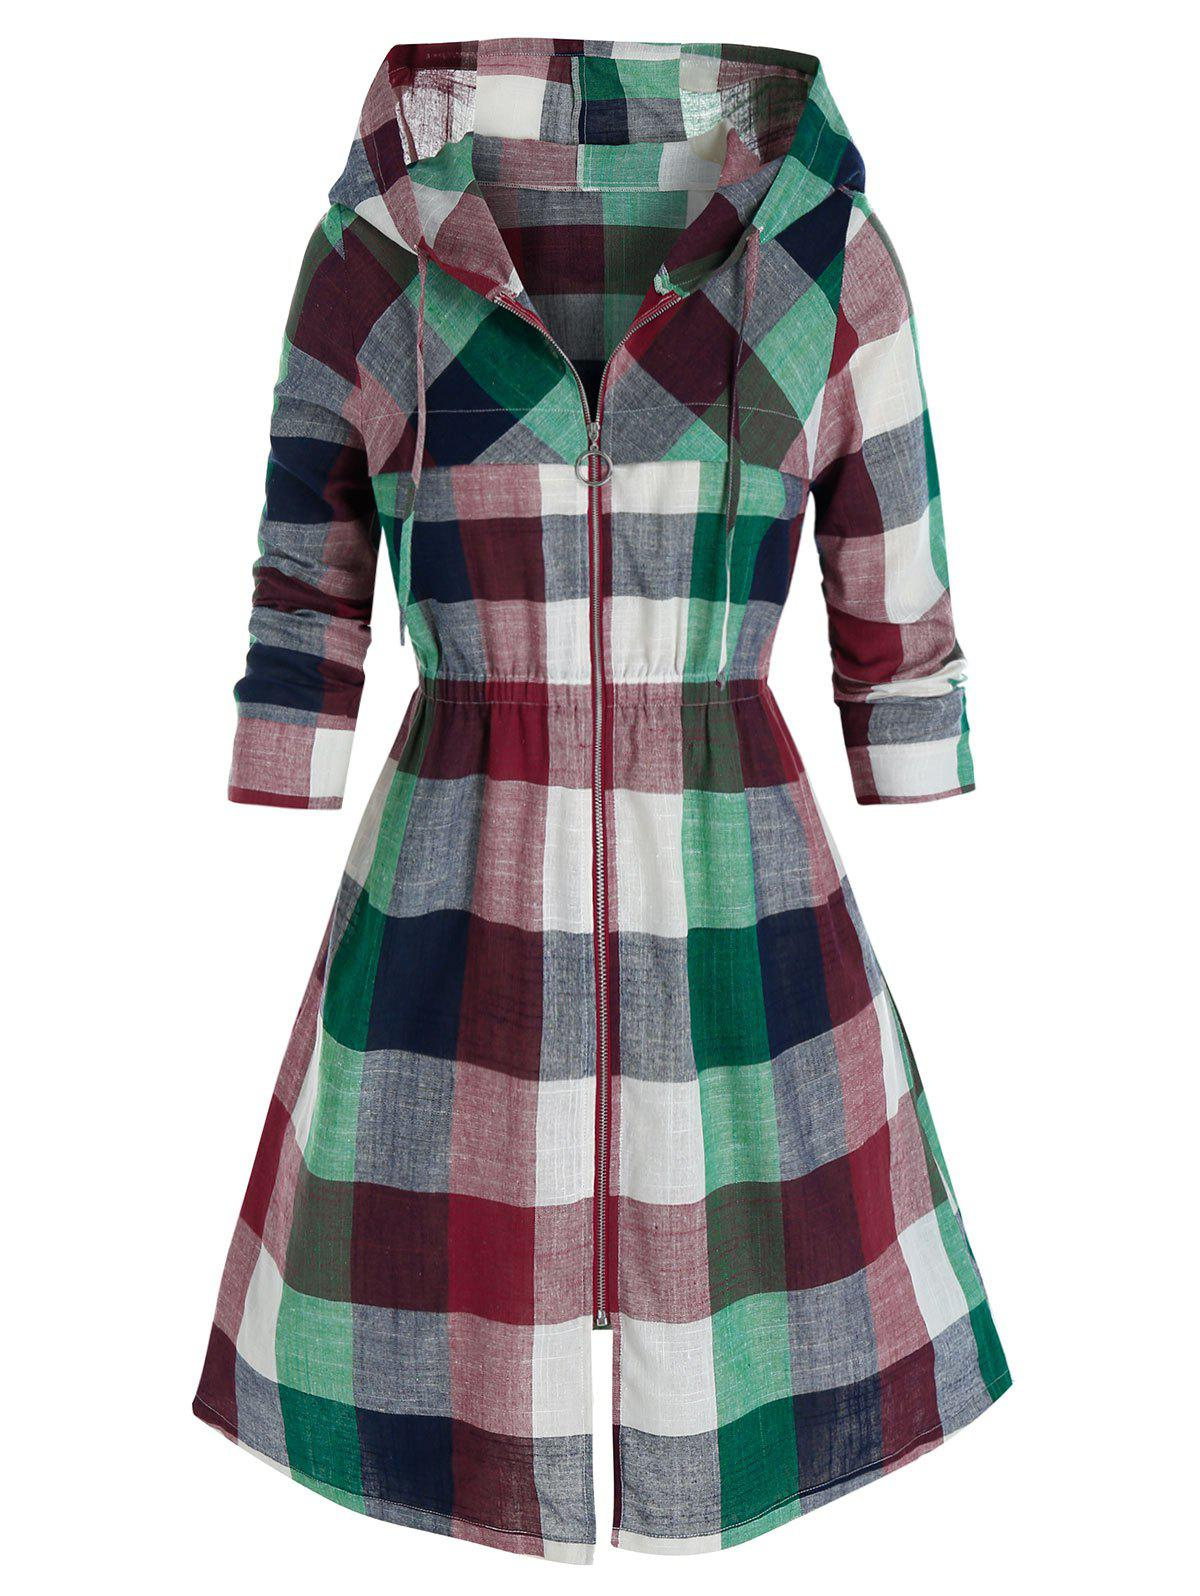 Plus Size Madras Plaid Hooded Zip Up Coat - RED WINE 5X